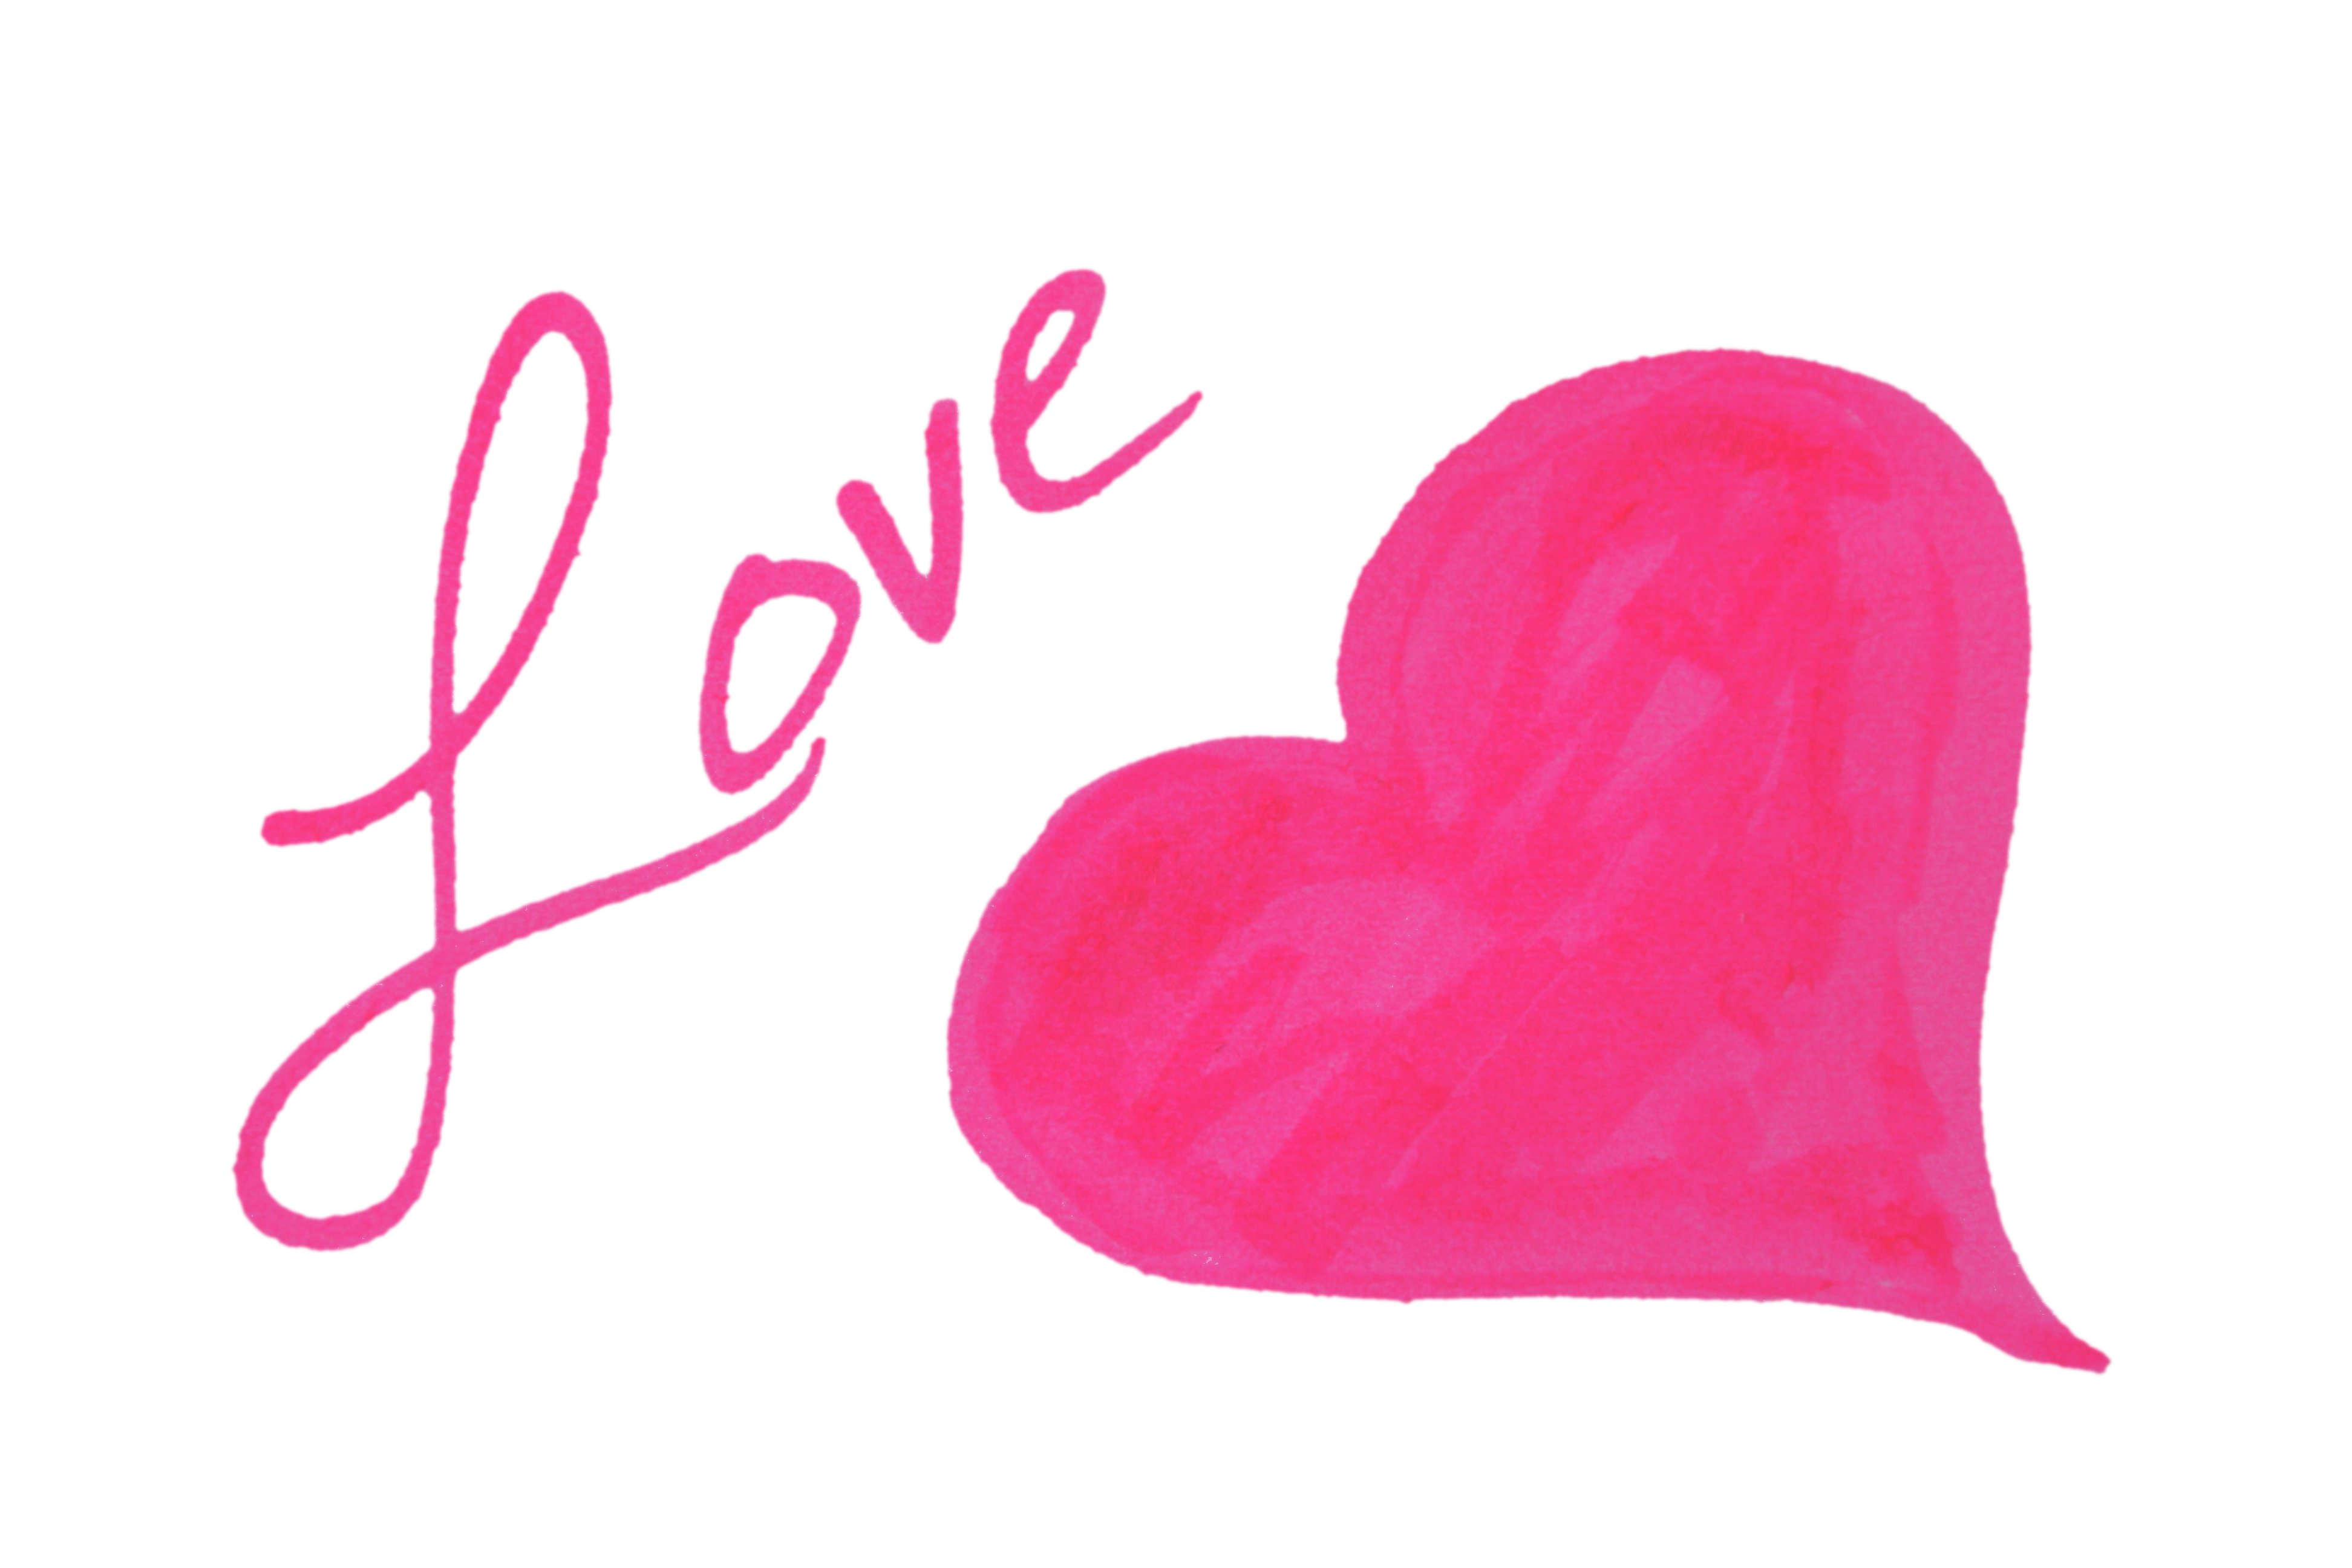 3888x2592 Pink Double Heart Clipart